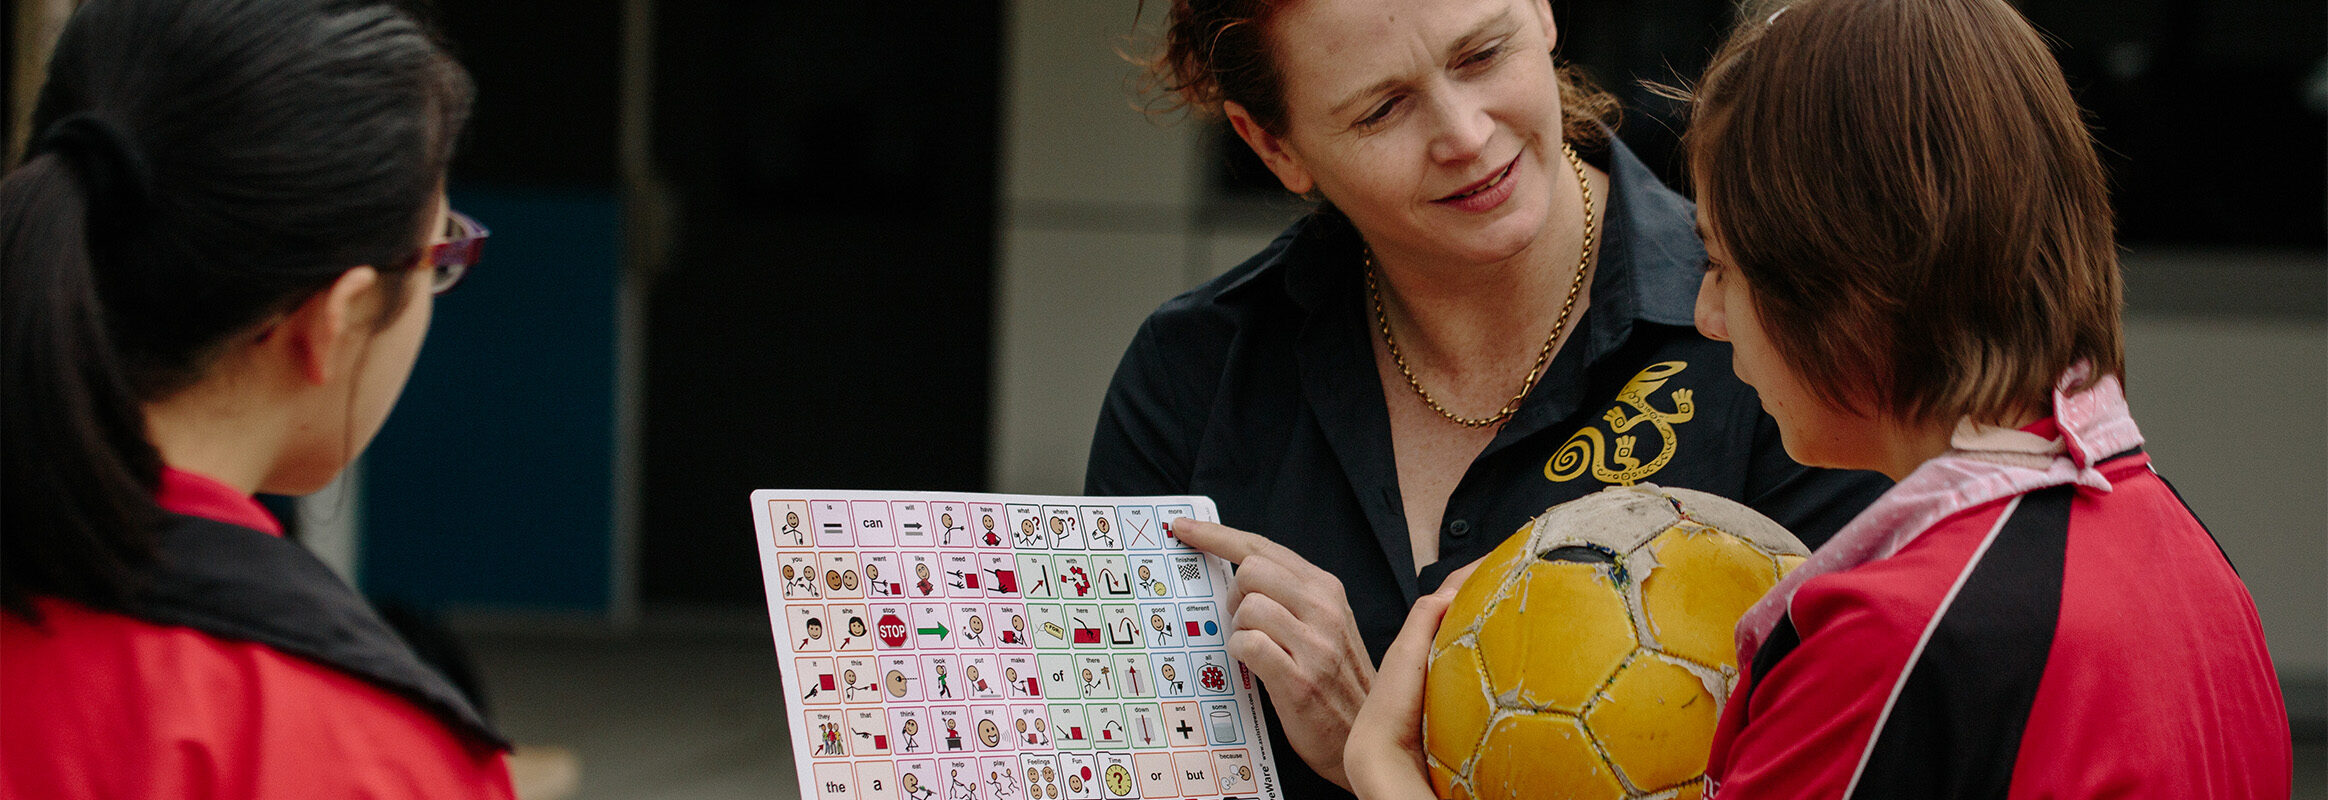 Young girl with soccer ball learning with core words board